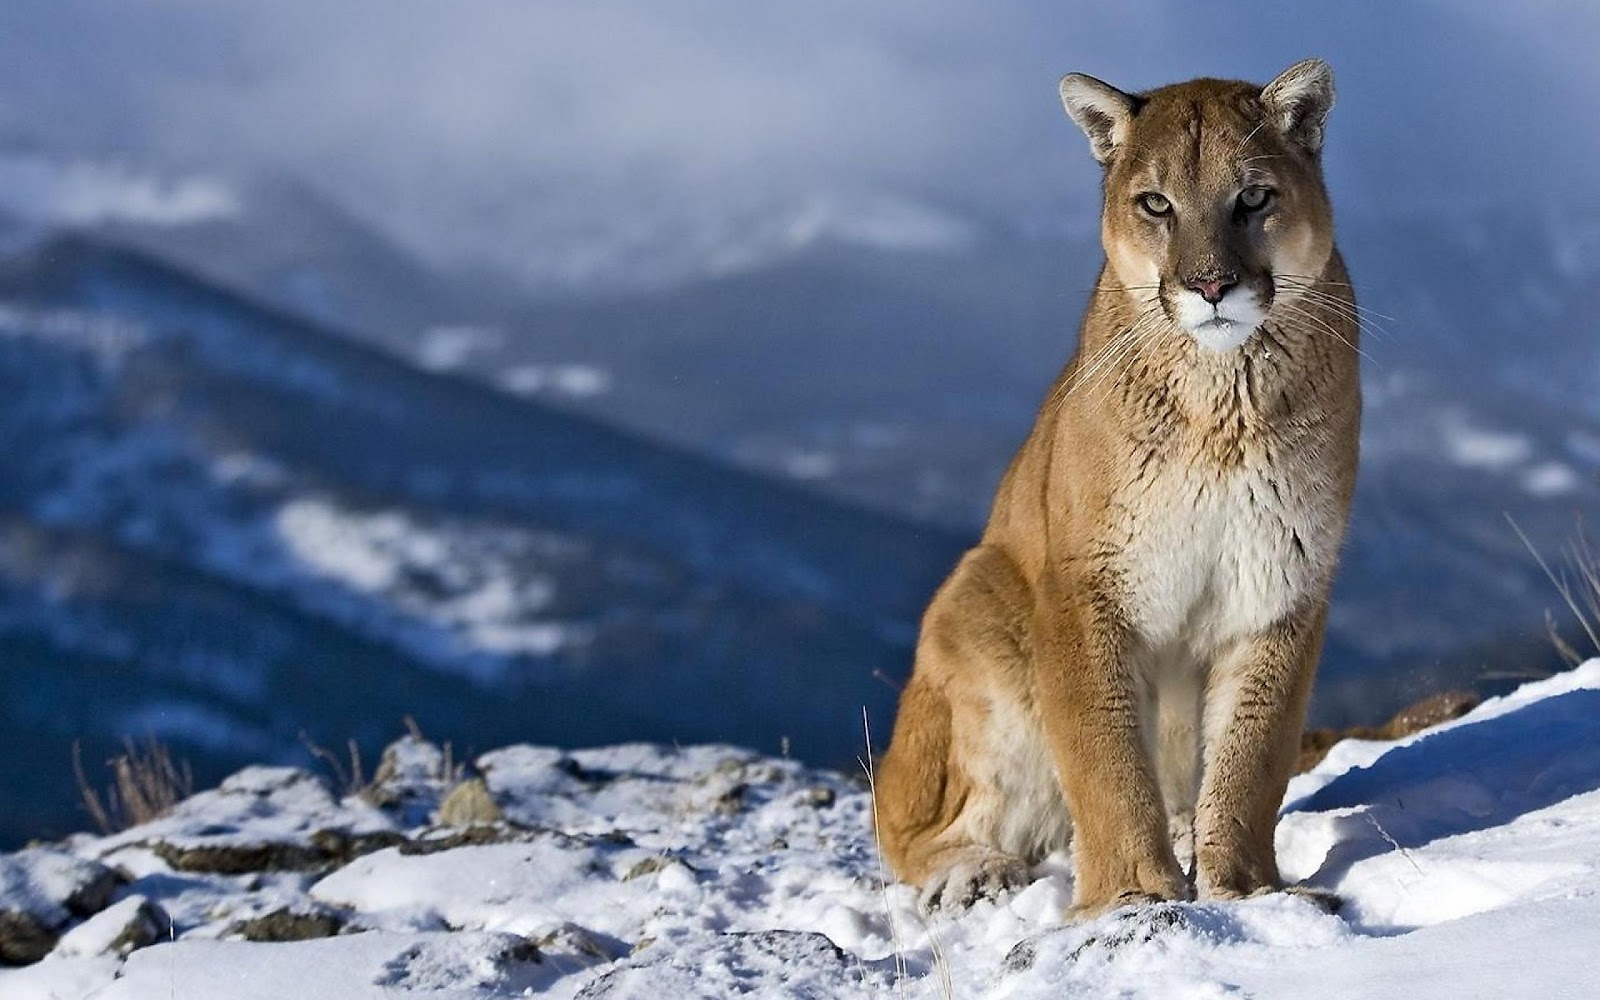 Apple Mountain Lion Background Wallpaper